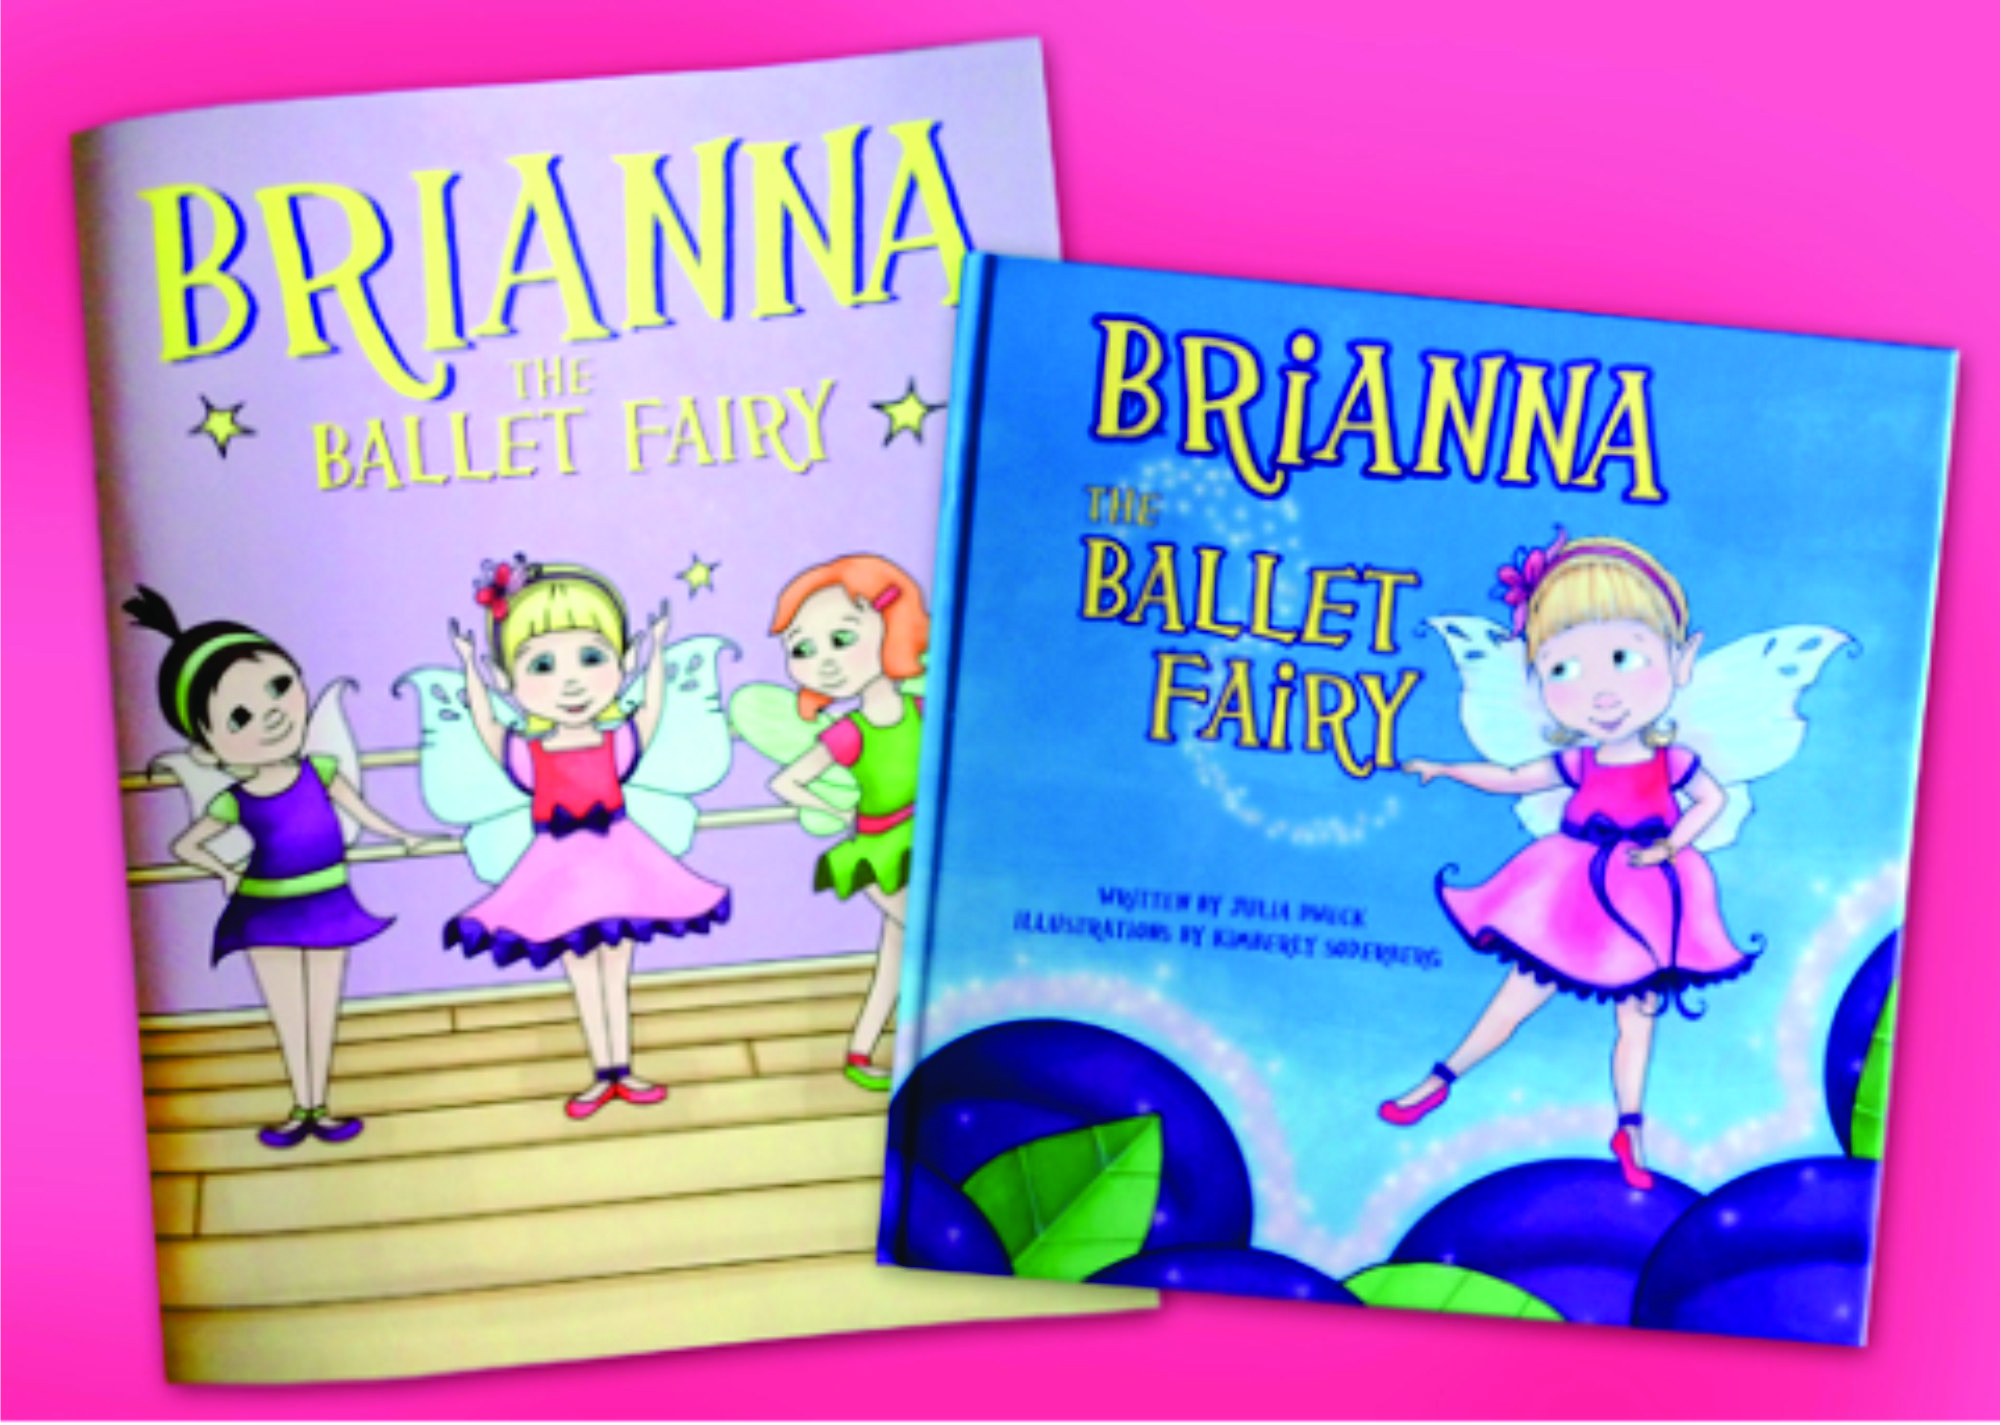 Brianna the Ballet Fairy written by Julia Dweck, illustrated by Kimberly Soderberg and published by Frecklebox, 2013.